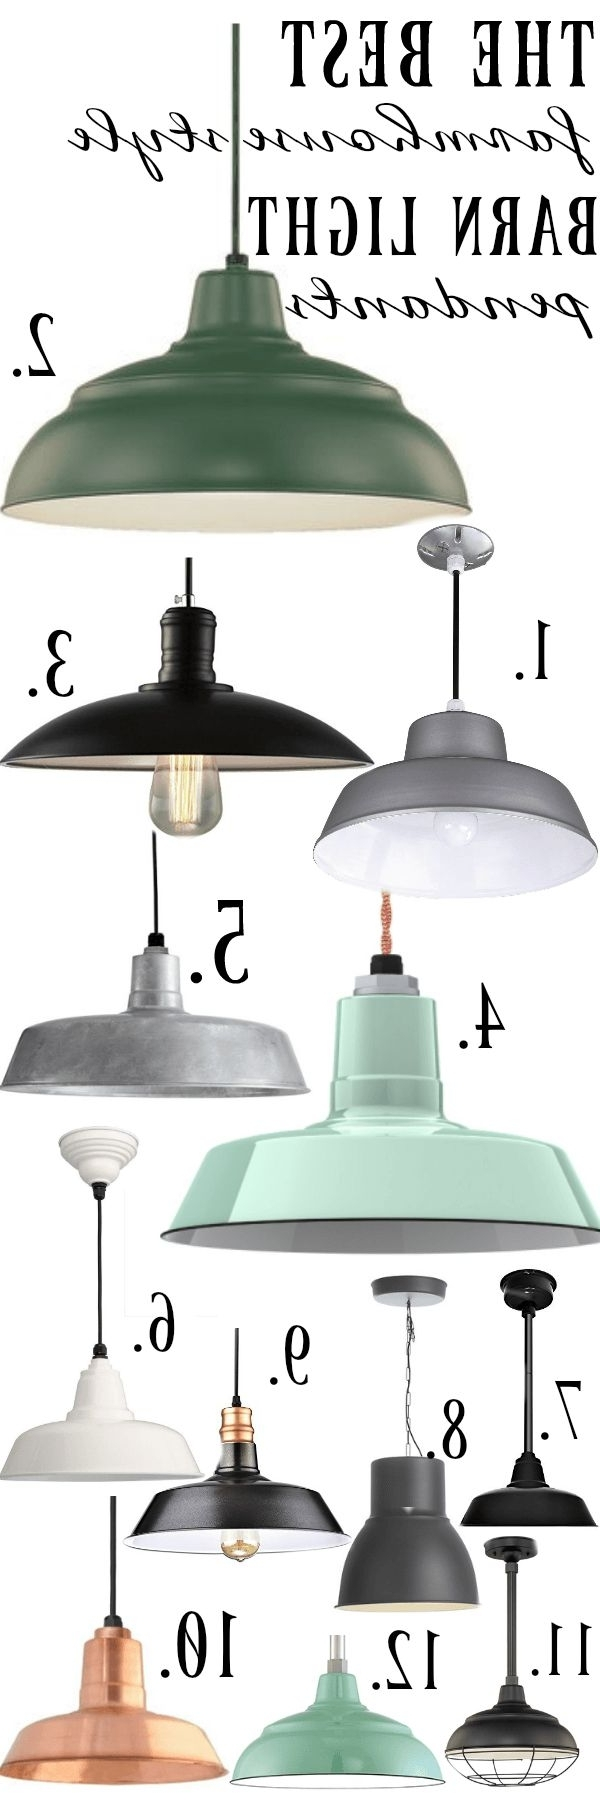 Lamps Plus Outdoor Ceiling Lights With 2019 Lamps Plus Sale Ceiling Lights Lowes Lamps Plus Open Box Ceiling (View 19 of 20)